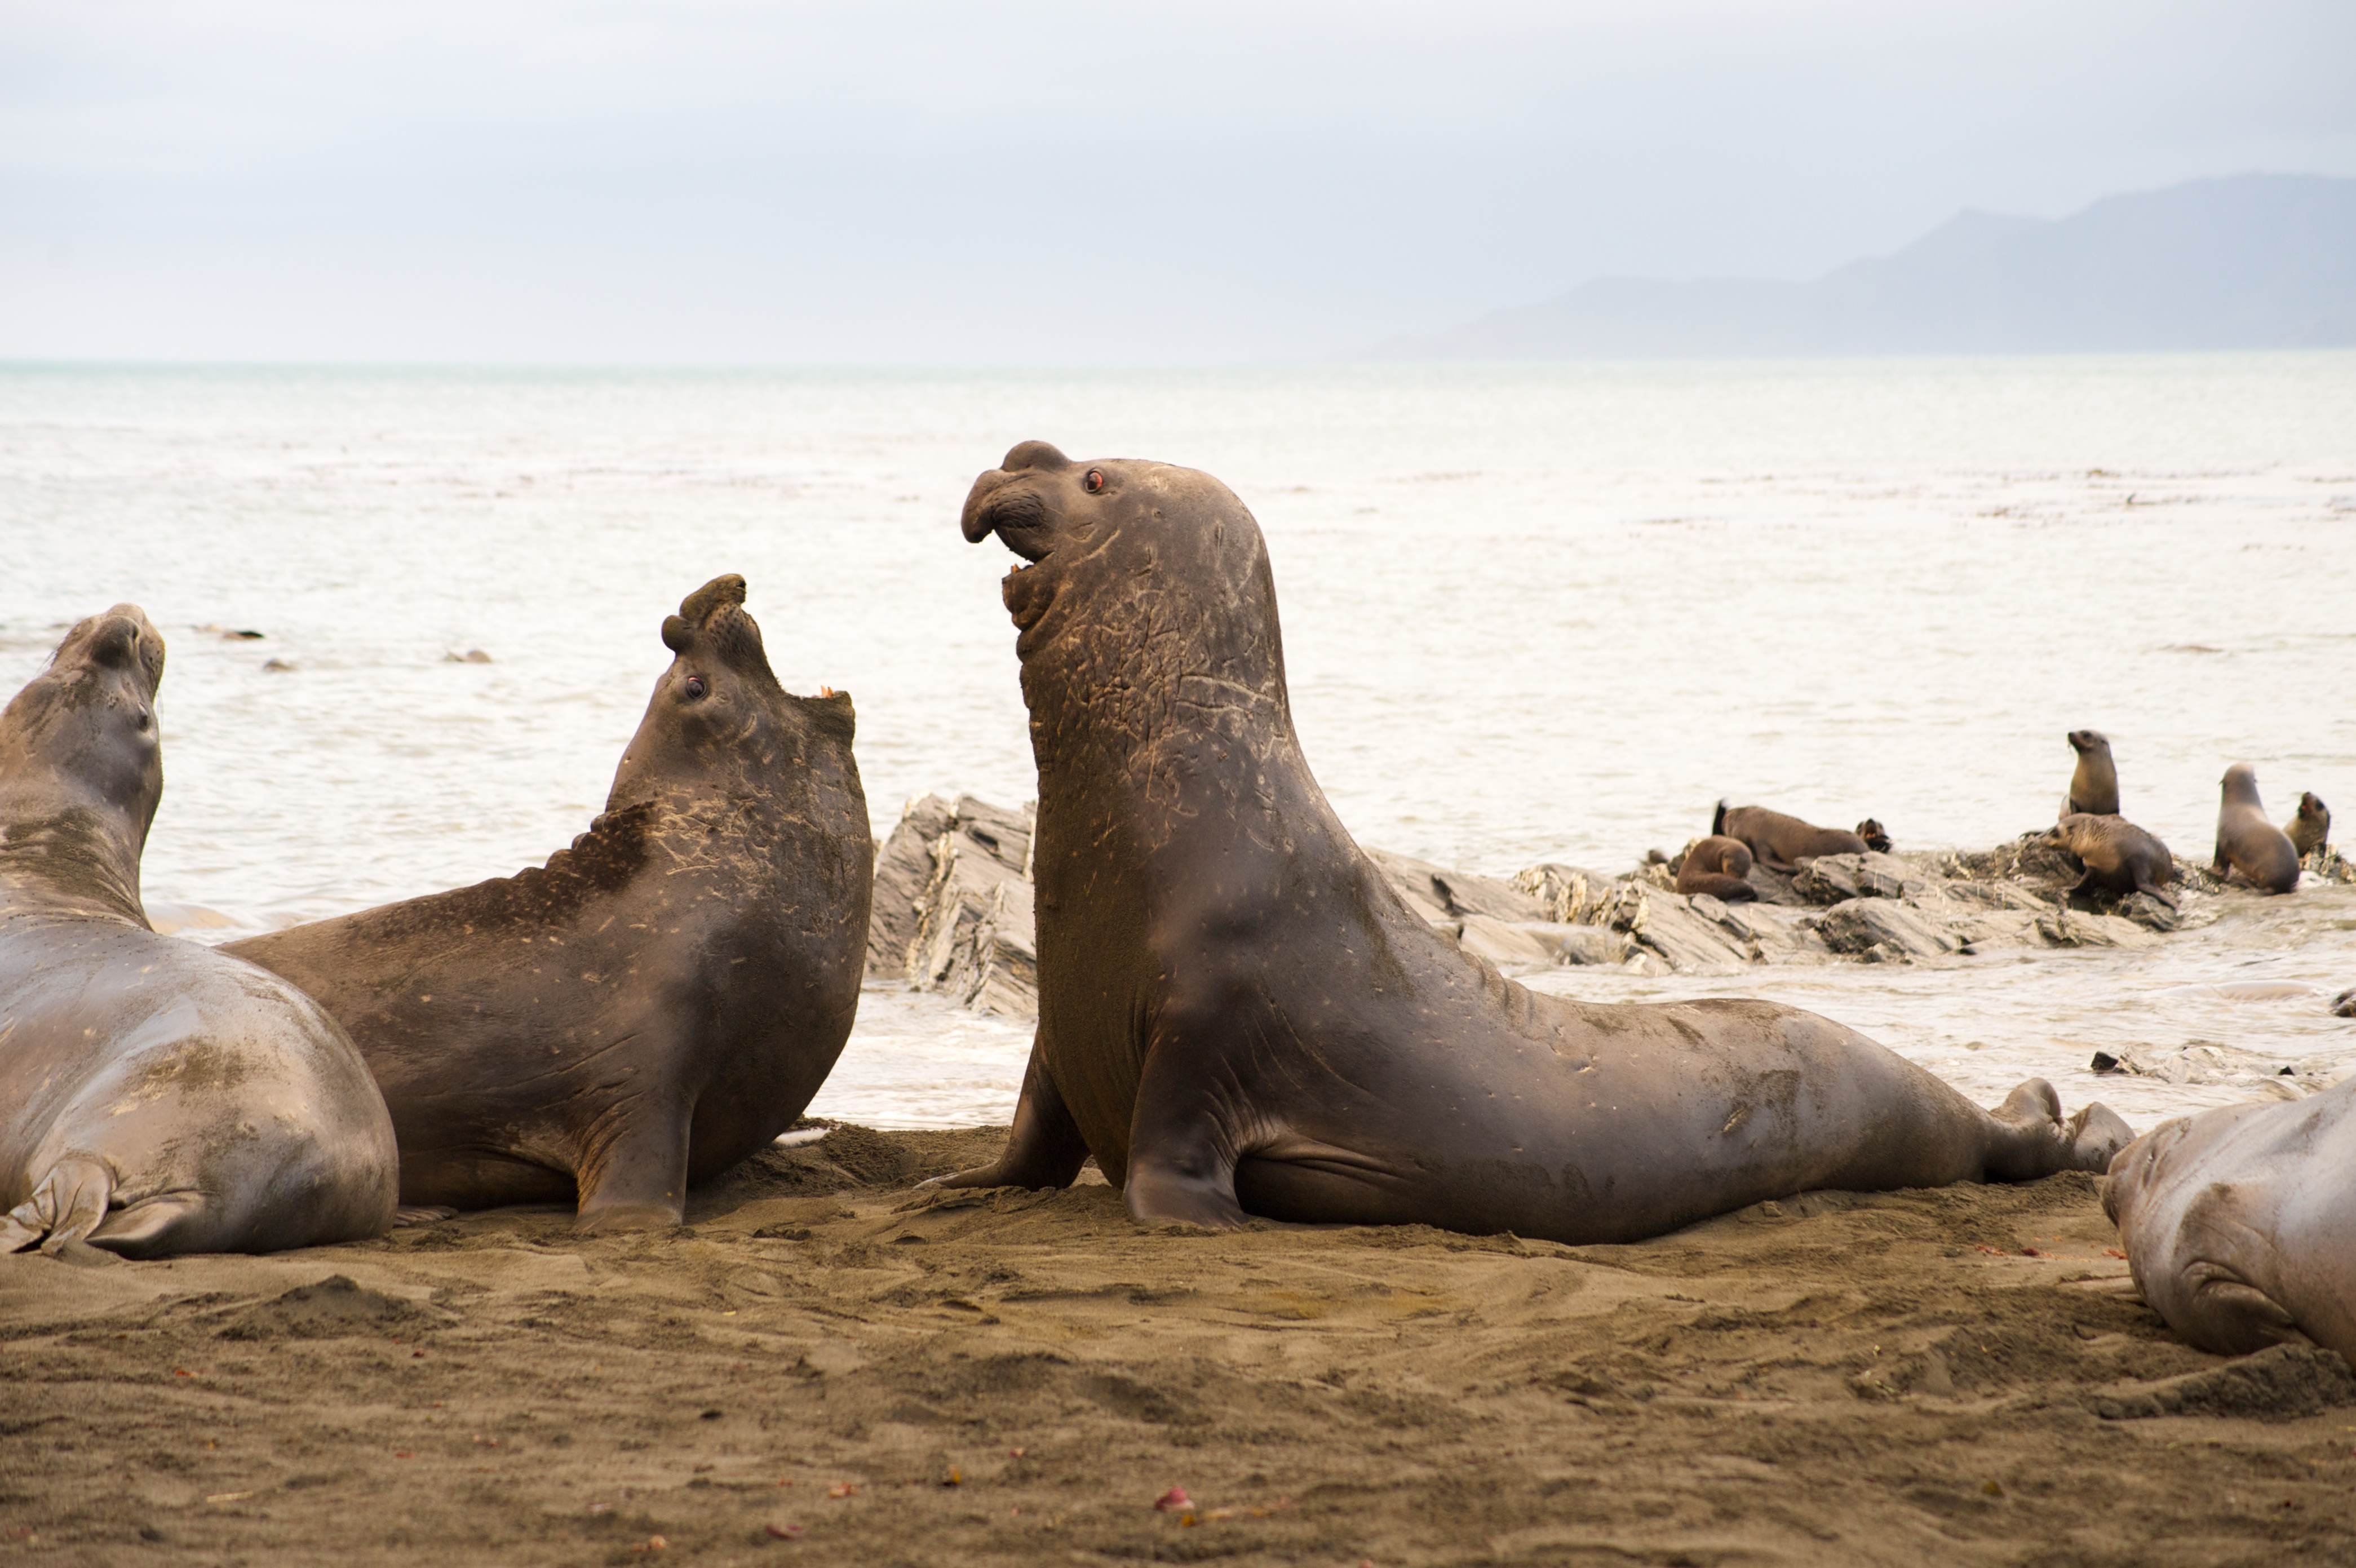 Elephant seals at Gold Harbour by Lynden